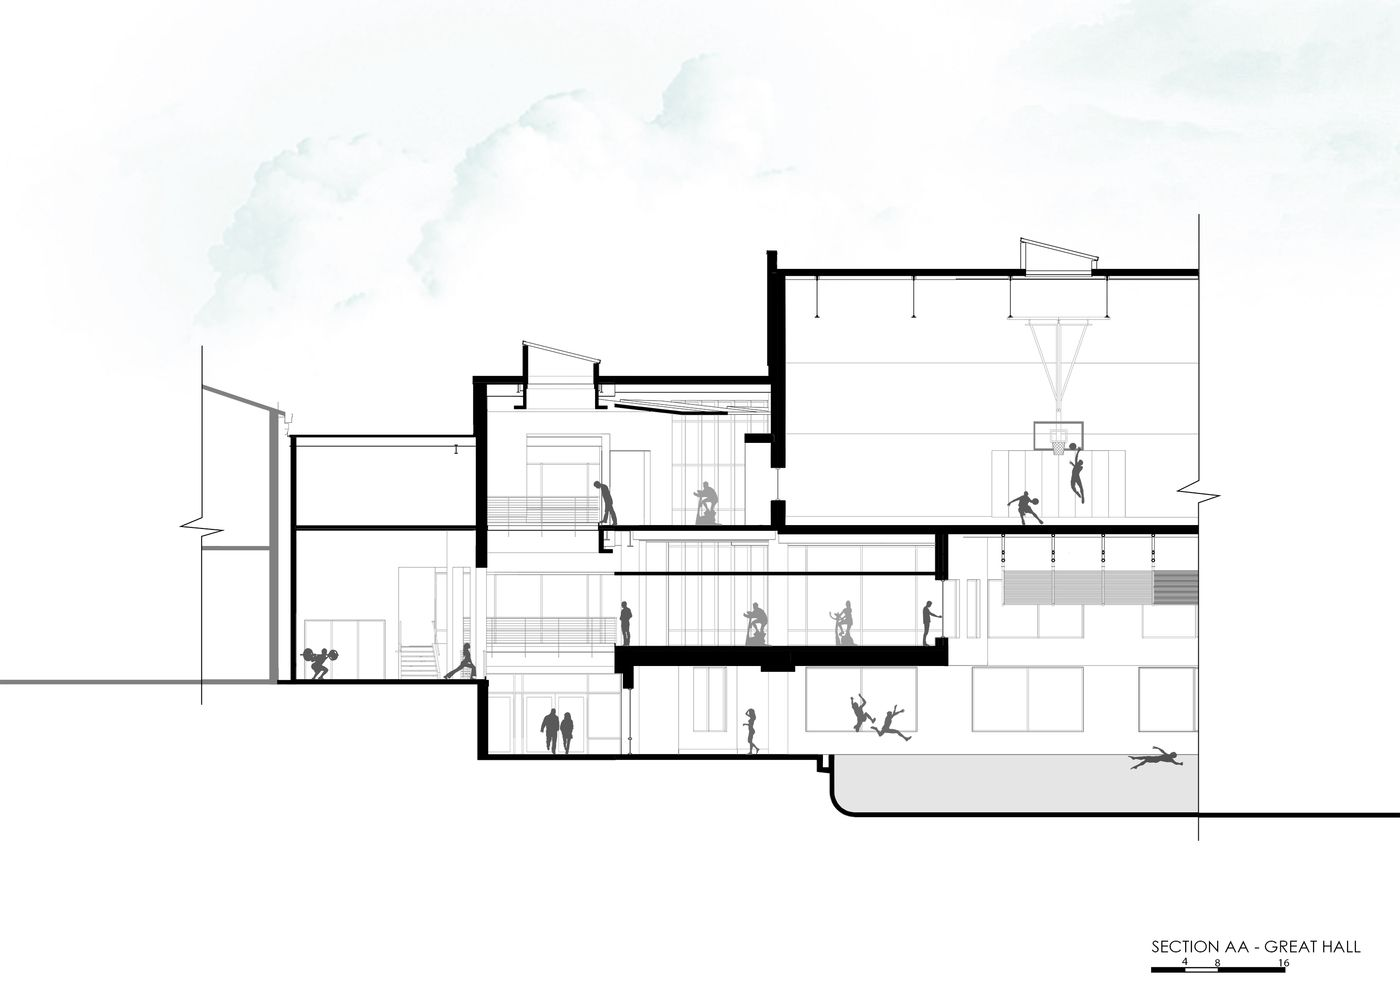 """sperry maclennan architects and planners Free essay: read case 3-2, """"sperry/maclennan architects and planners,"""" located at the end of chapter 3 in the text, marketing research, by aaker, kumar, and."""